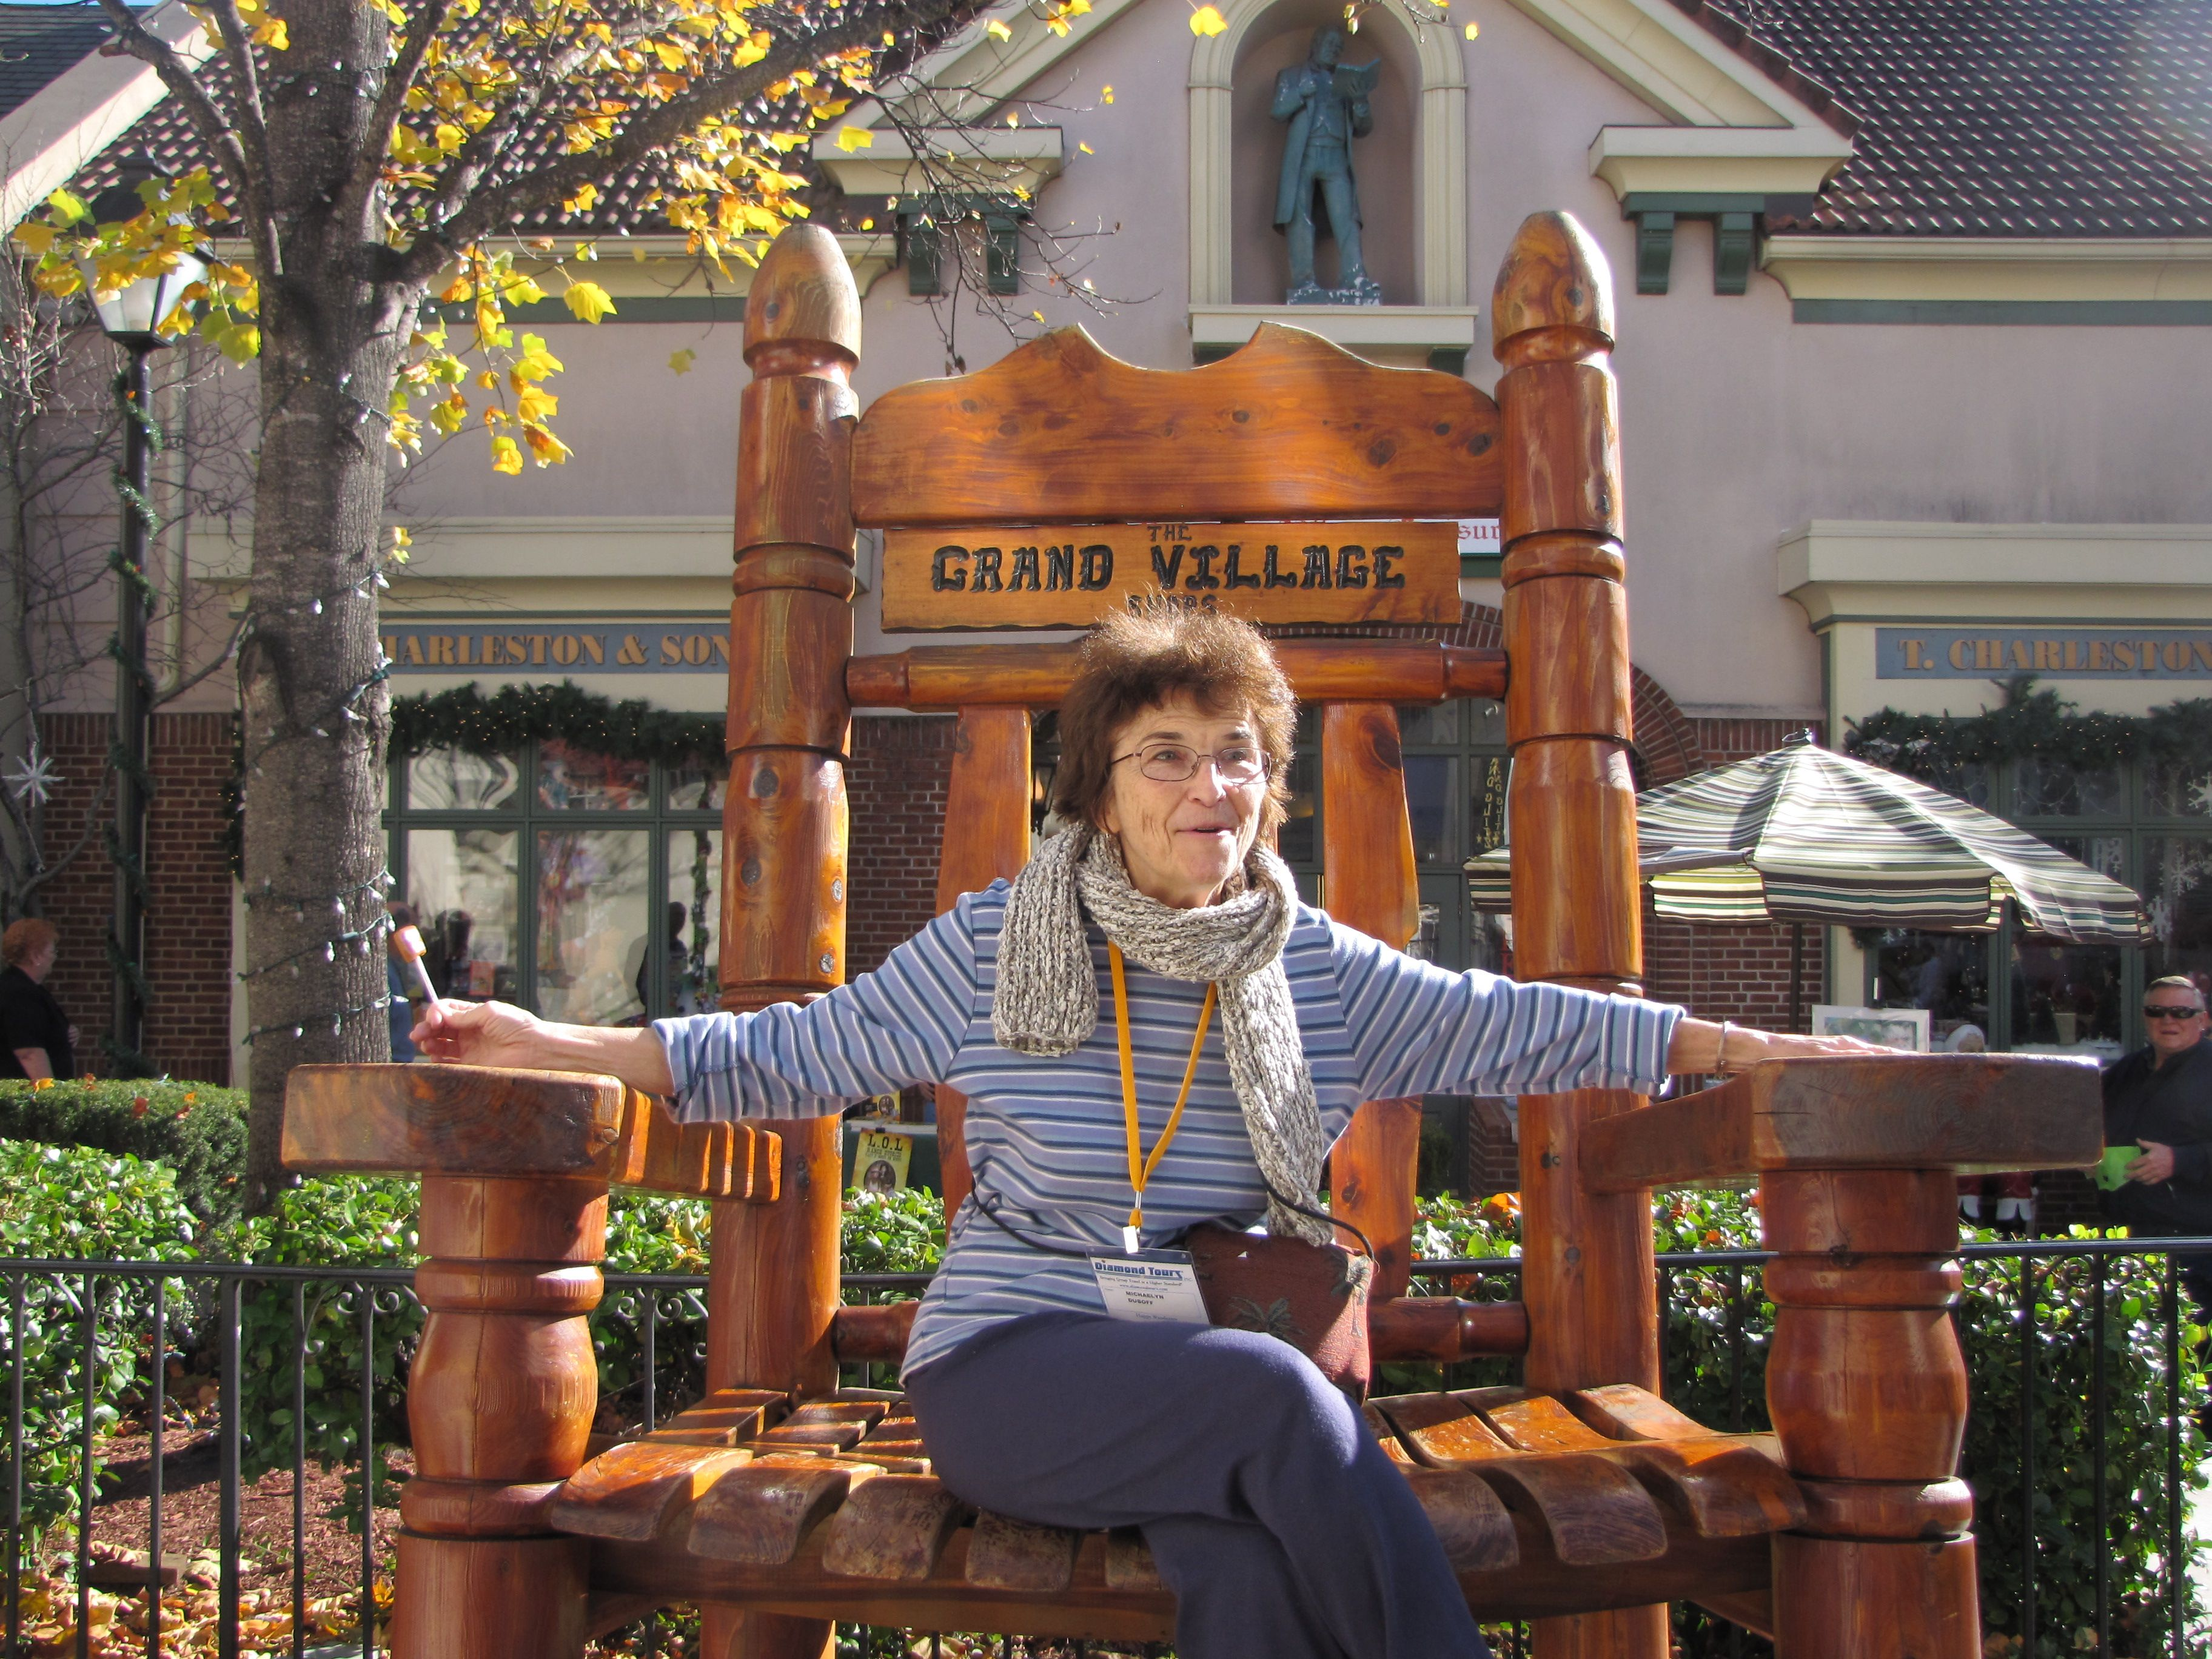 Lady in giant chair